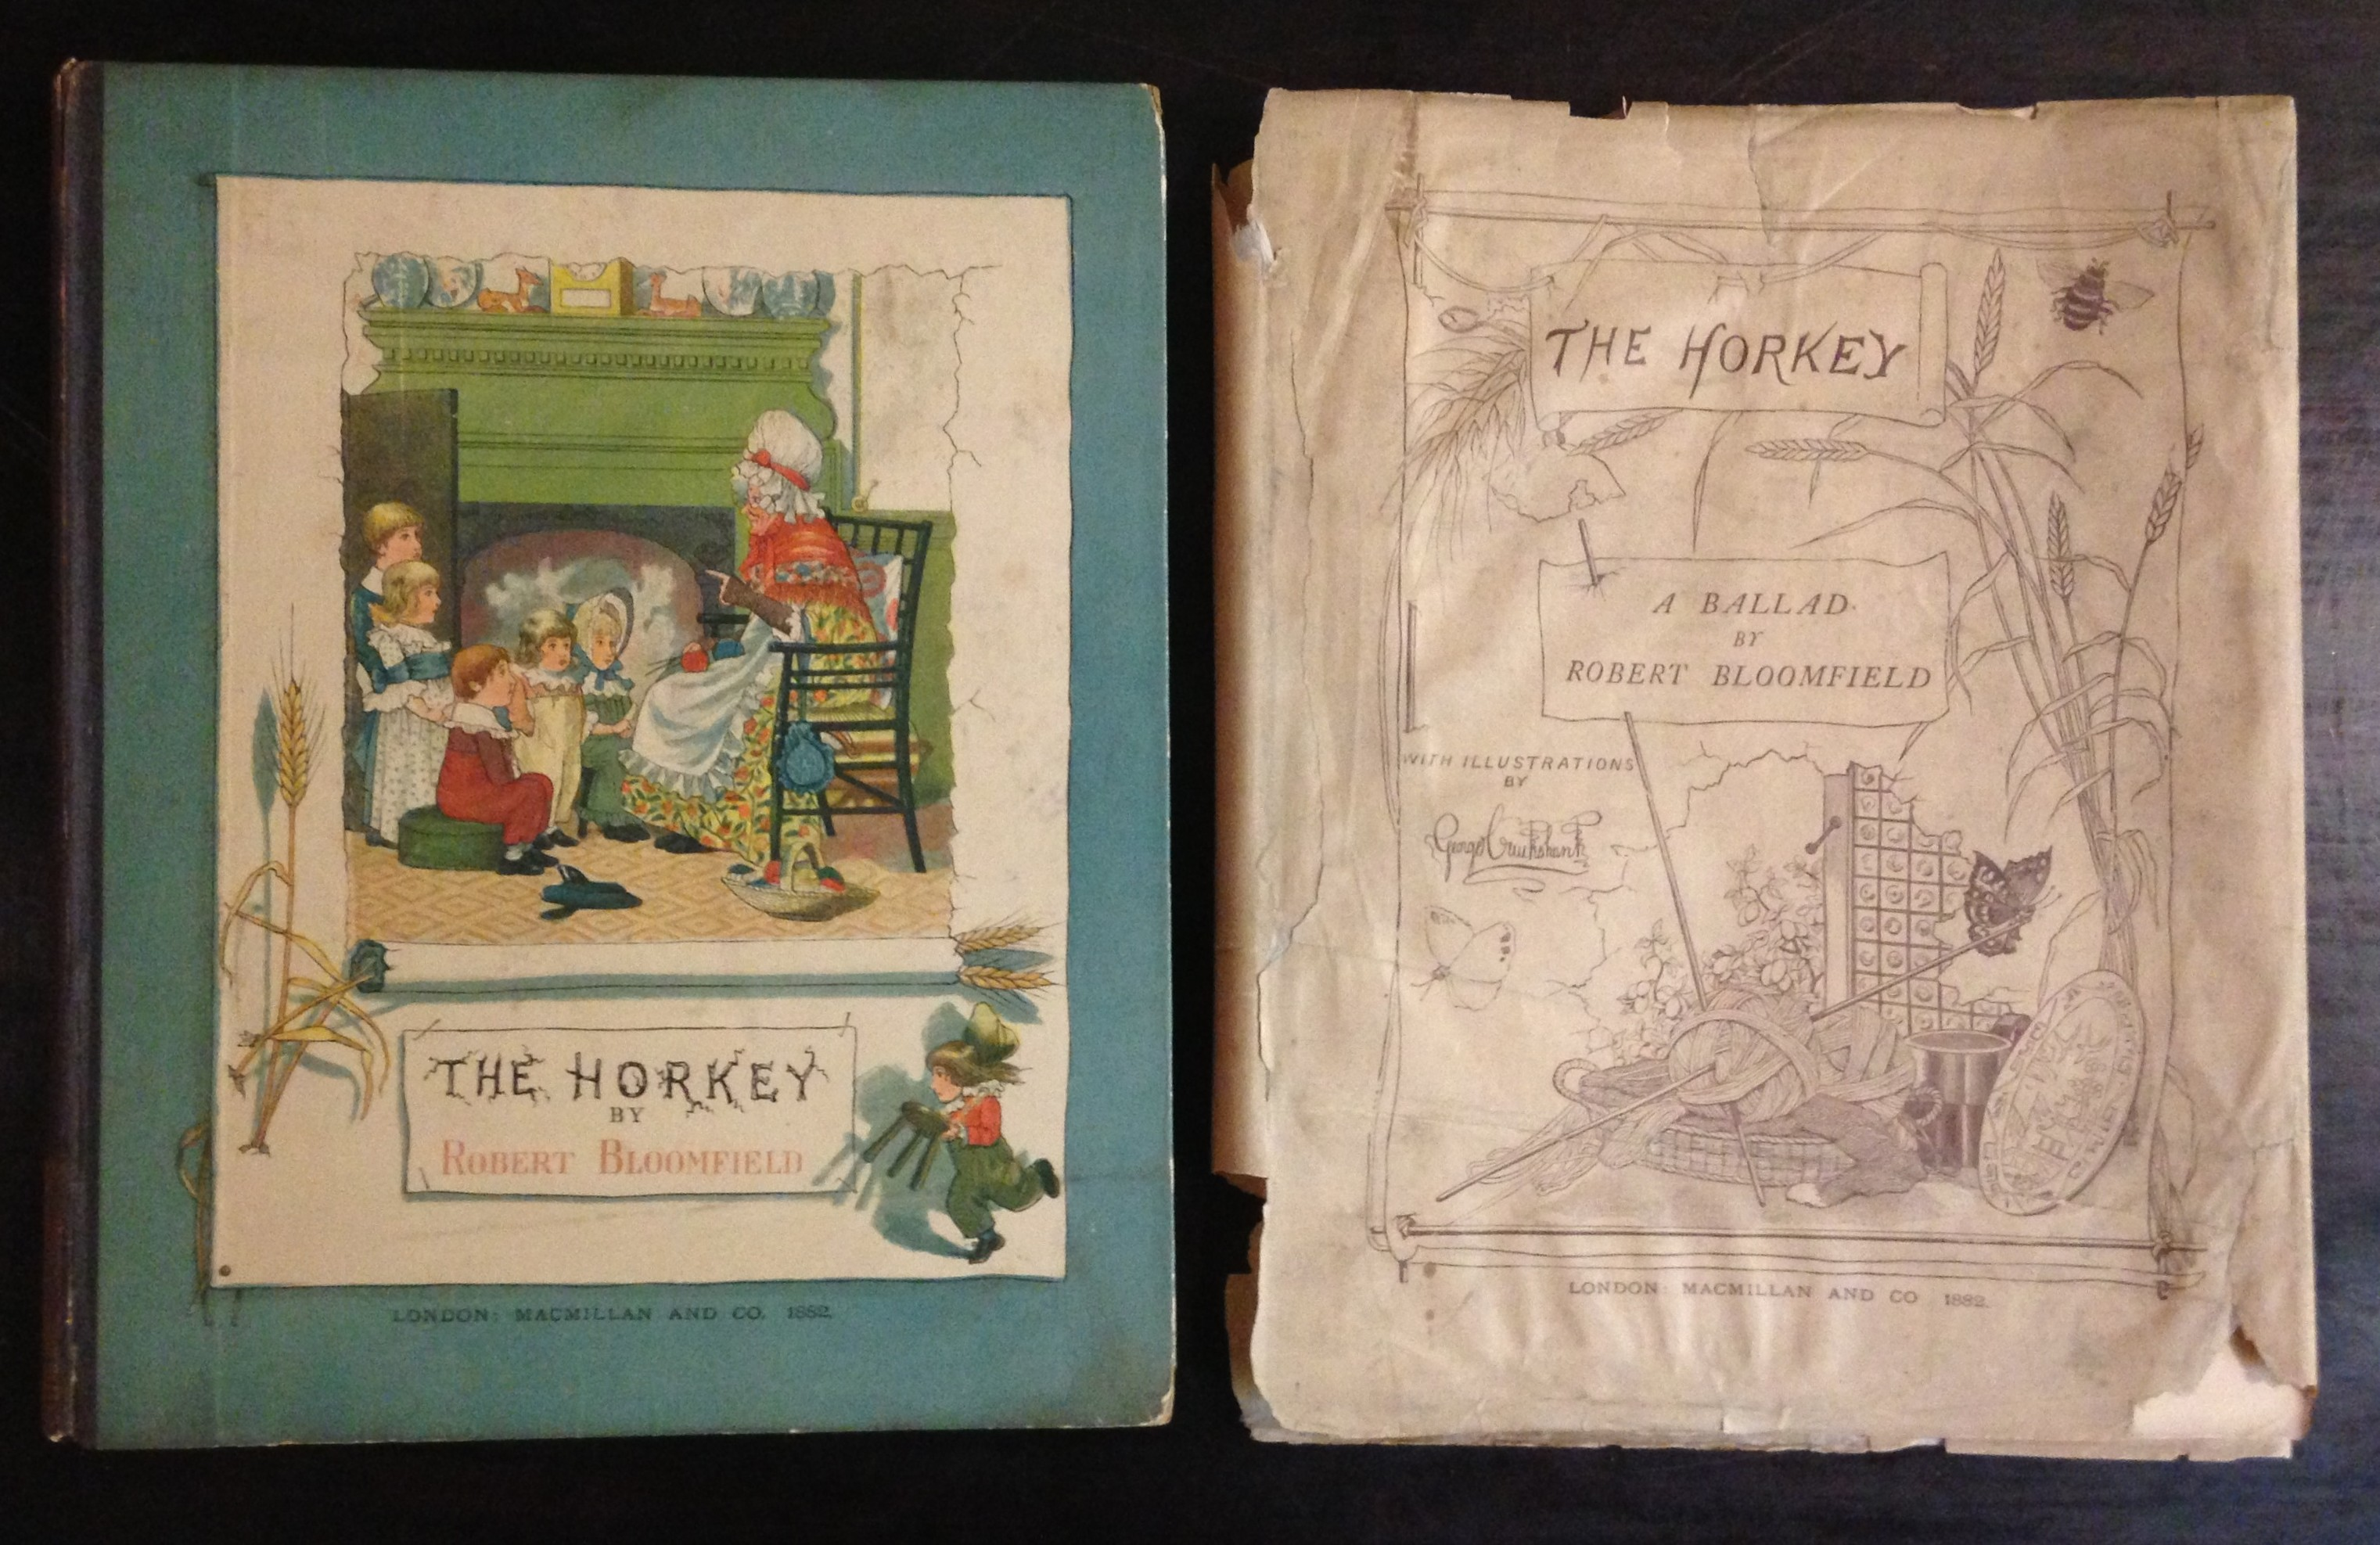 This color-printed children's book--Robert Bloomfield's The Horkey (London: Macmillan, 1882)--is bound in color-printed paper boards. The dust jacket replicates the color-printed title page design--perhaps color was considered an unnecessary extravagance for this ephemeral covering.